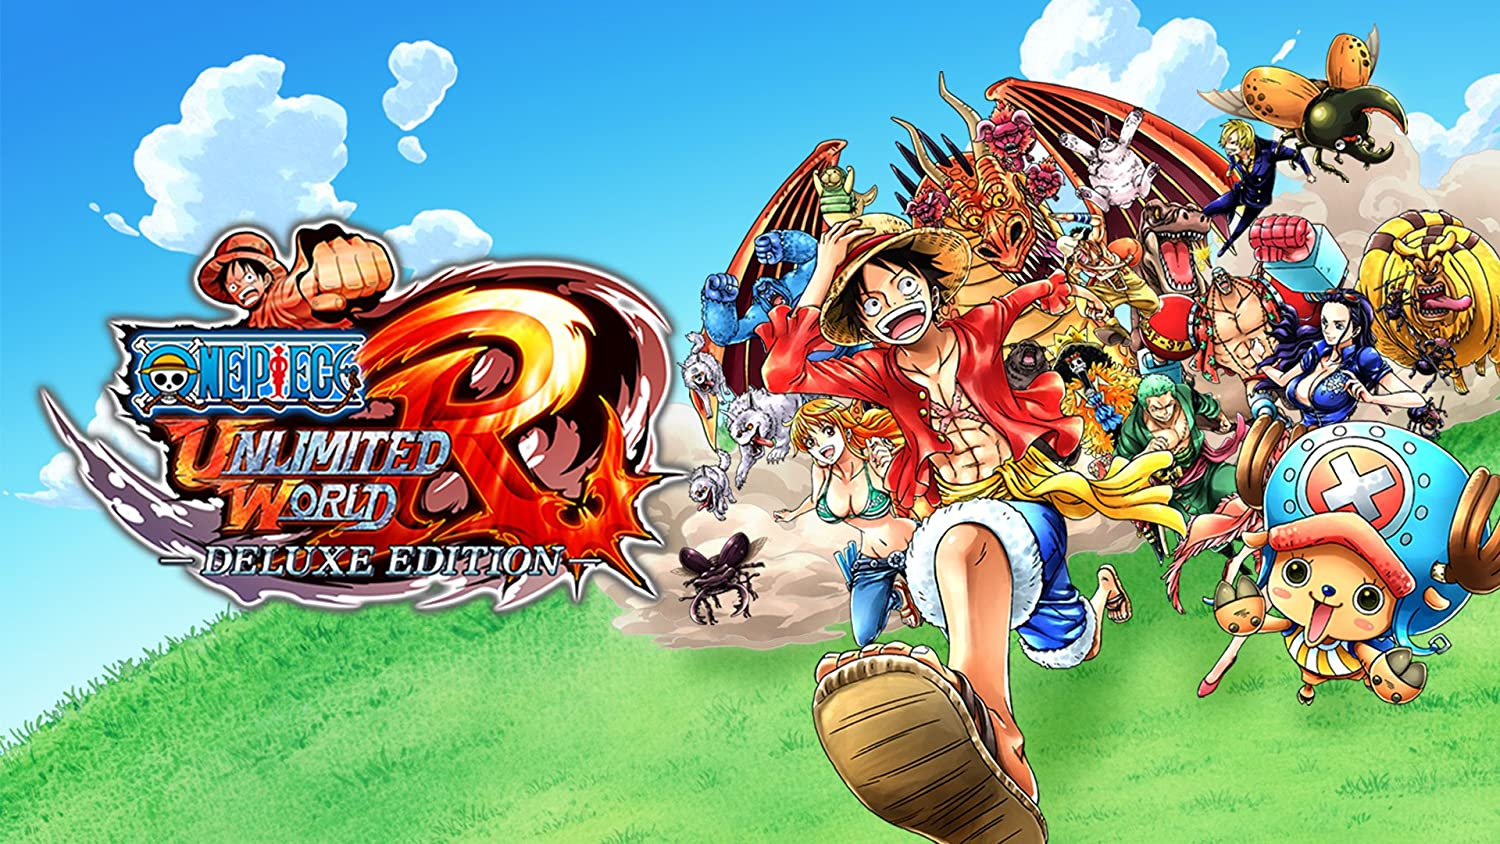 Amazon.com: ONE PIECE: Unlimited World Red Deluxe Edition ...